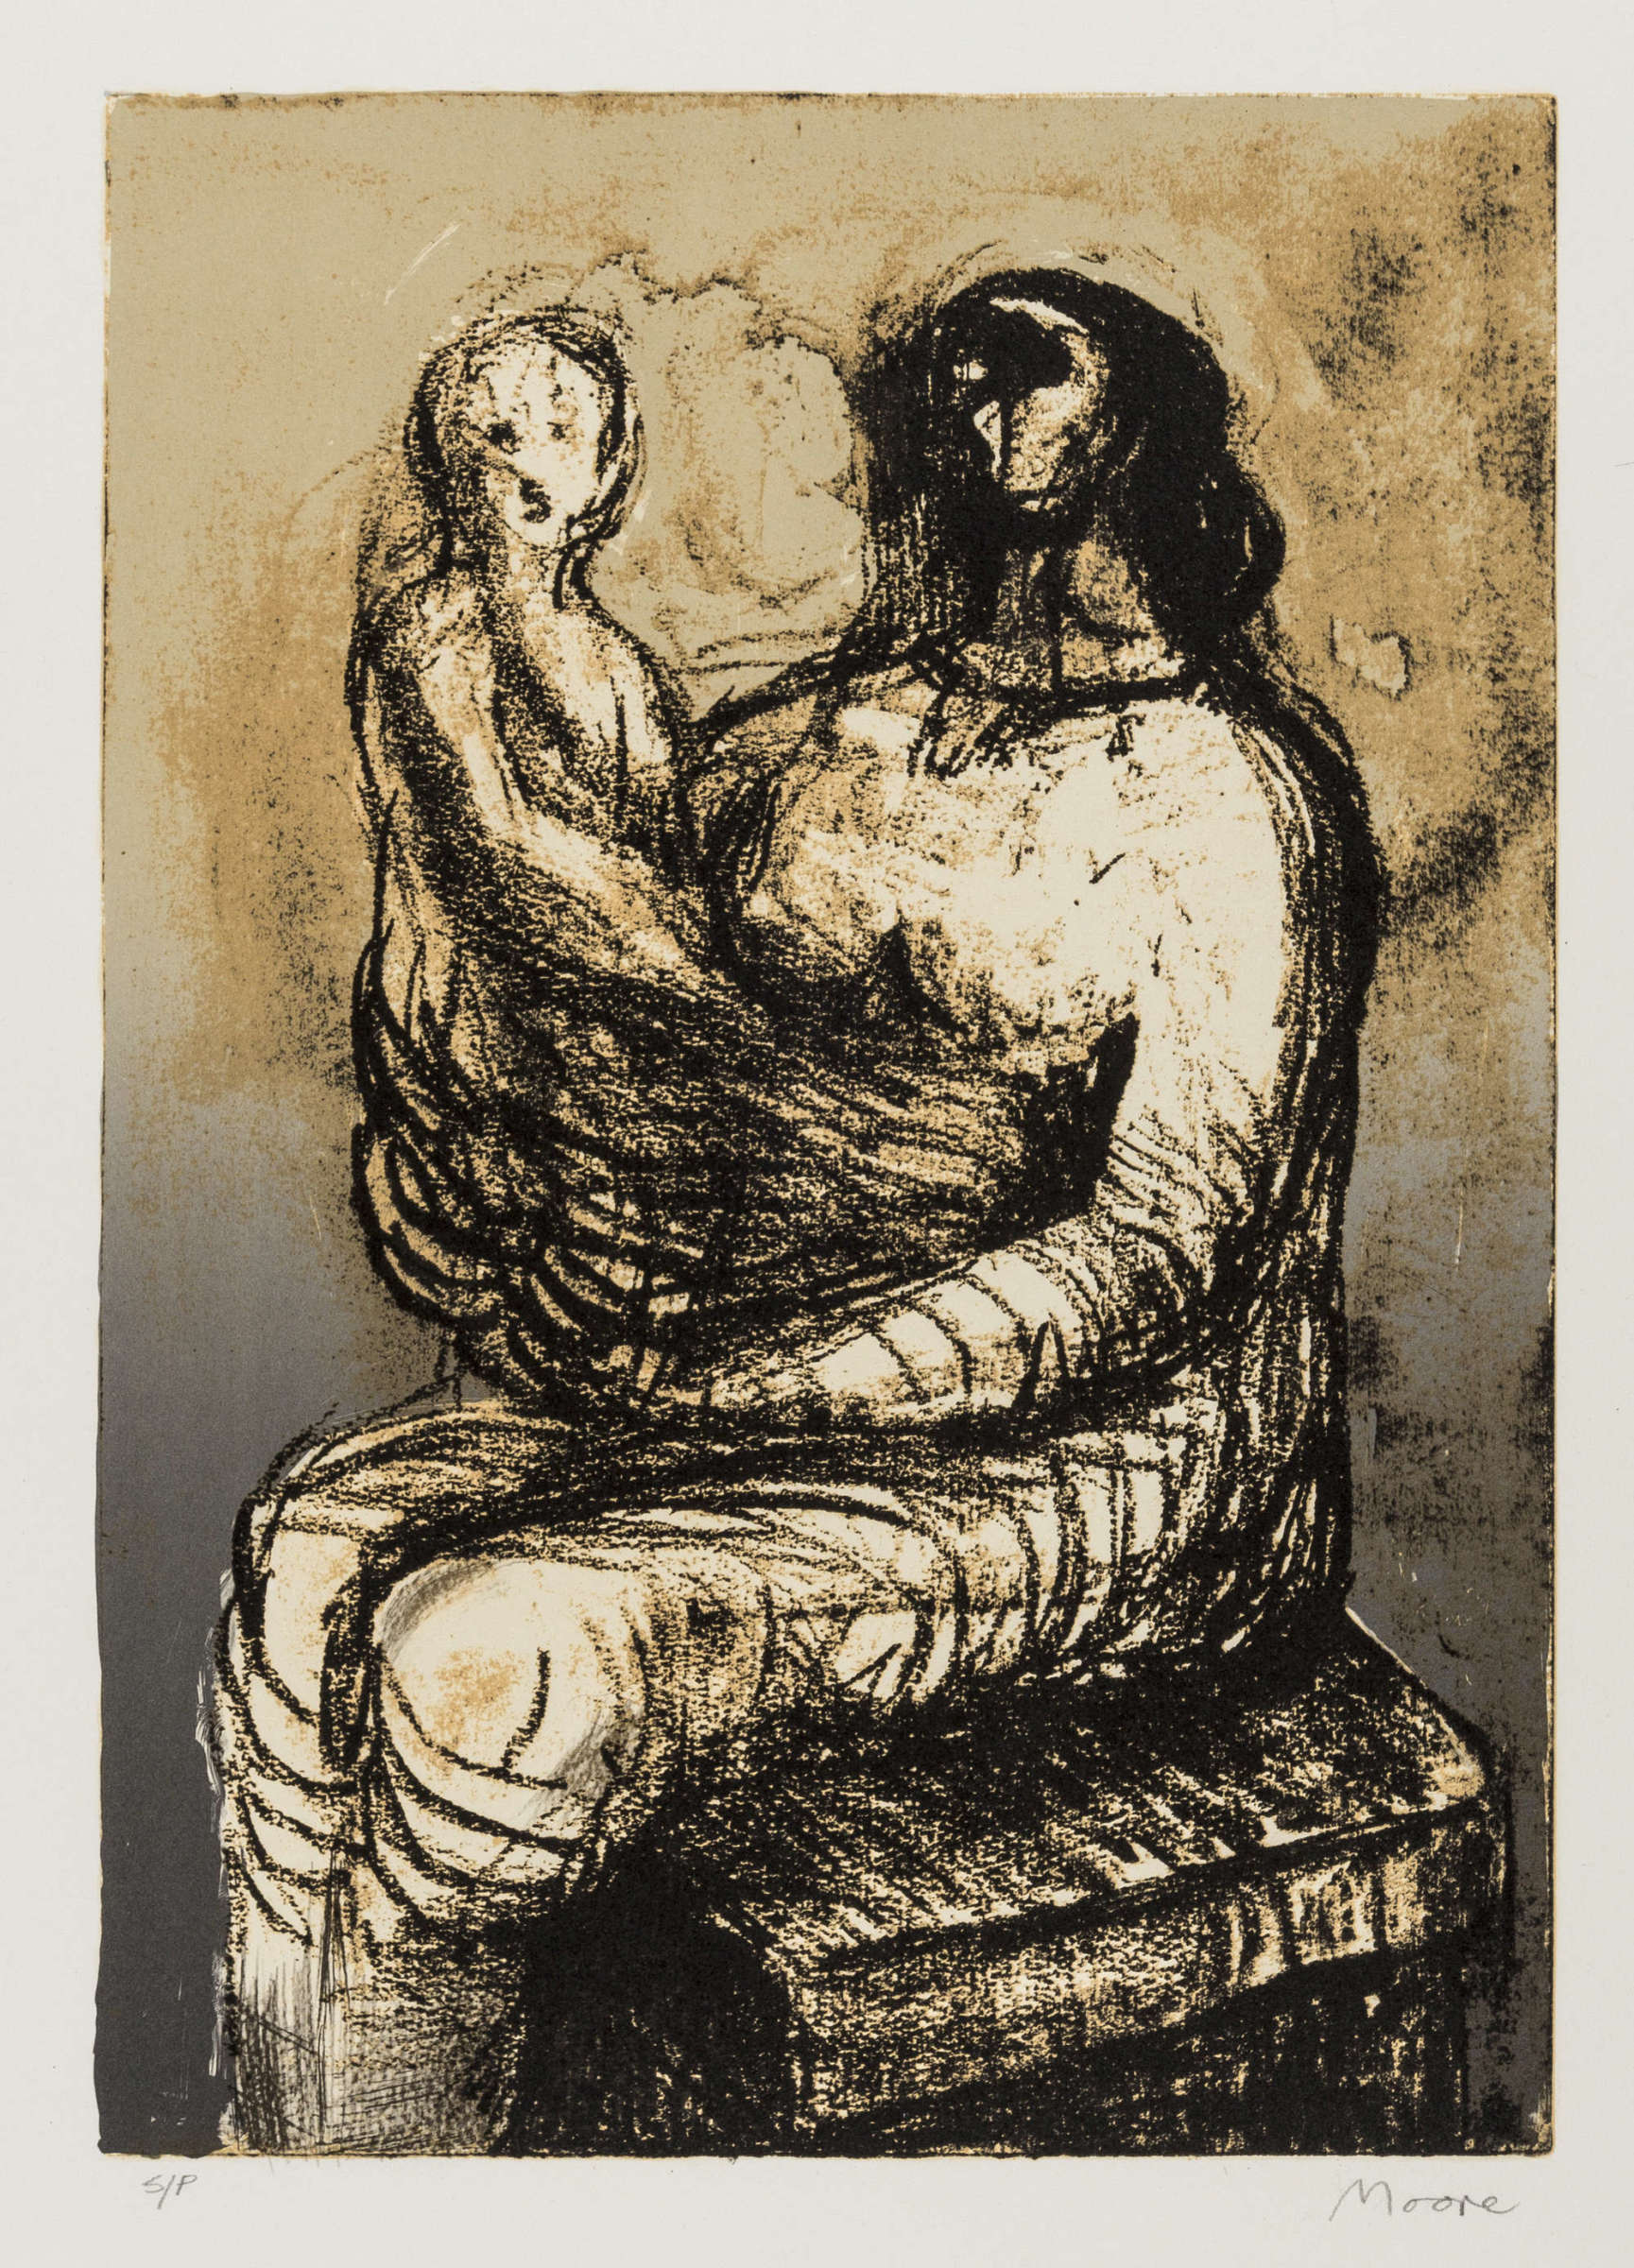 <span class=&#34;link fancybox-details-link&#34;><a href=&#34;/artists/111-henry-moore-om-ch/works/4878-henry-moore-om-ch-mother-with-child-on-lap-cramer-651-1982/&#34;>View Detail Page</a></span><div class=&#34;artist&#34;><strong>Henry Moore OM CH</strong></div> 1898–1986 <div class=&#34;title&#34;><em>Mother with Child on Lap (Cramer 651)</em>, 1982</div> <div class=&#34;signed_and_dated&#34;>signed and inscribed s/p in pencil</div> <div class=&#34;medium&#34;>lithograph printed in colours, with full margins</div> <div class=&#34;dimensions&#34;>sheet size: 63.1 x 50.8 cm<br /> 24 7/8 x 20 in</div> <div class=&#34;edition_details&#34;>a studio proof aside from the edition of 50</div><div class=&#34;copyright_line&#34;>@ The Estate of Henry Moore</div>